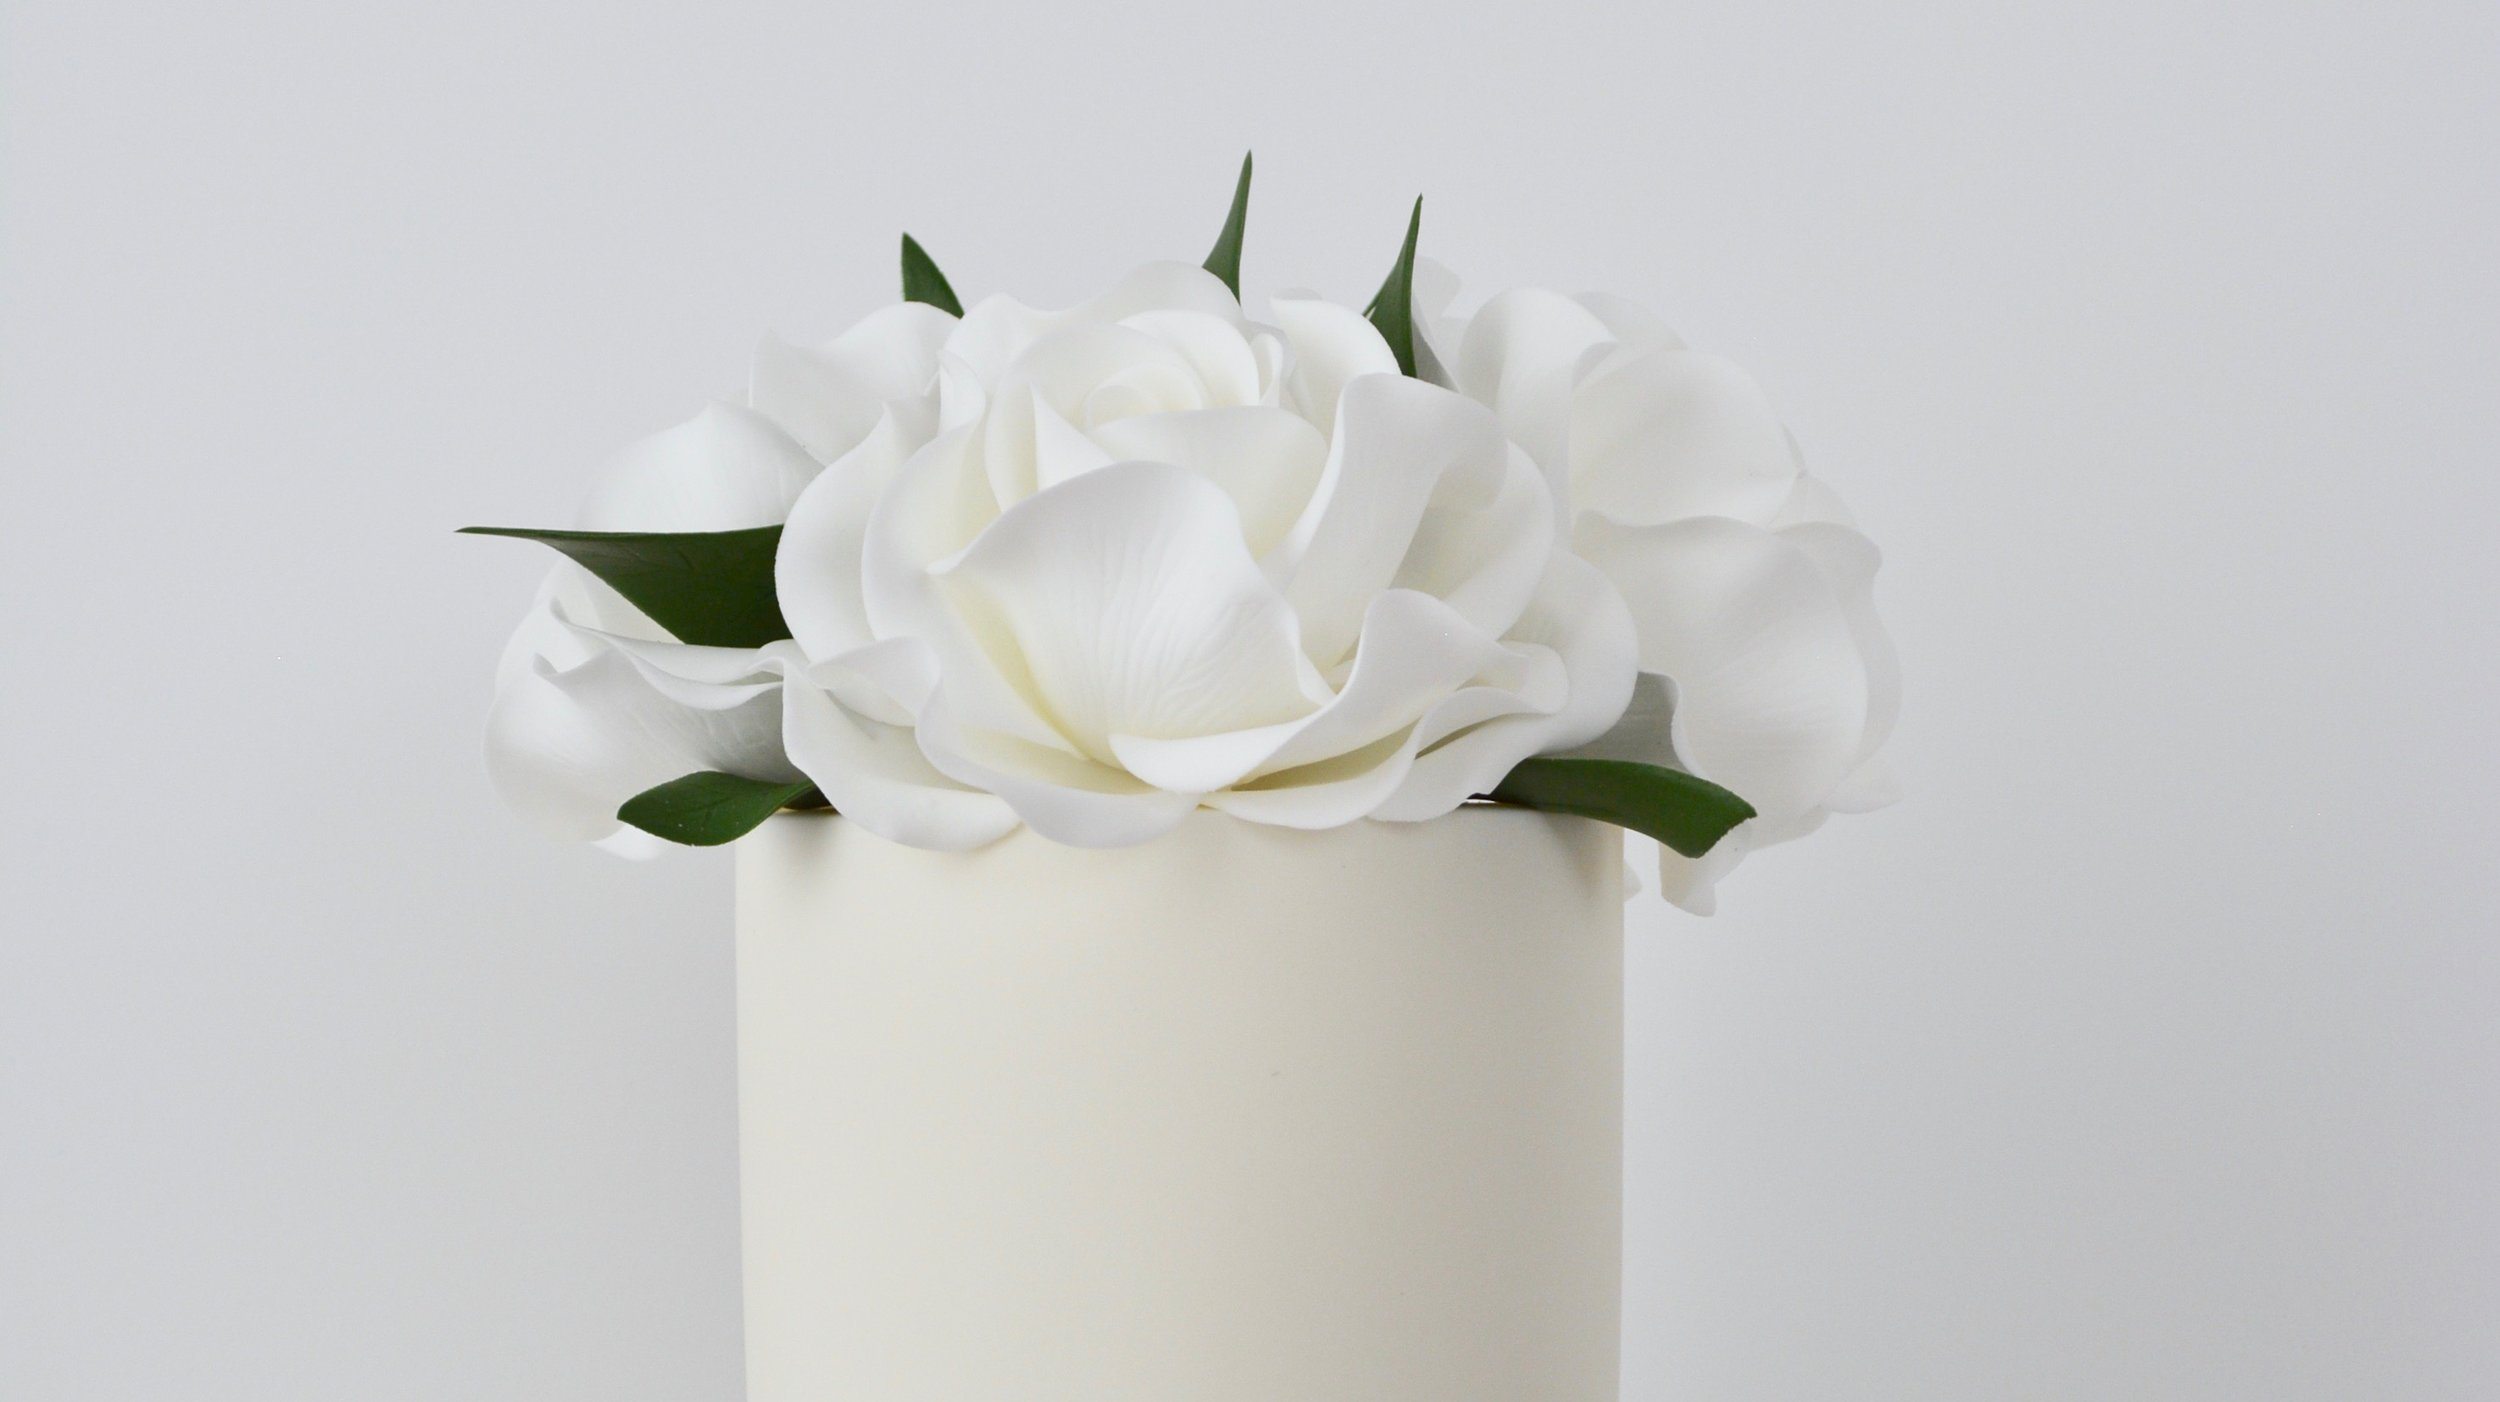 White Roses and Ranunculus - A marble icing tier contrasting striking white contemporary sugar roses, delicate ranunculus and poppy seed heads for an elegant showstopper